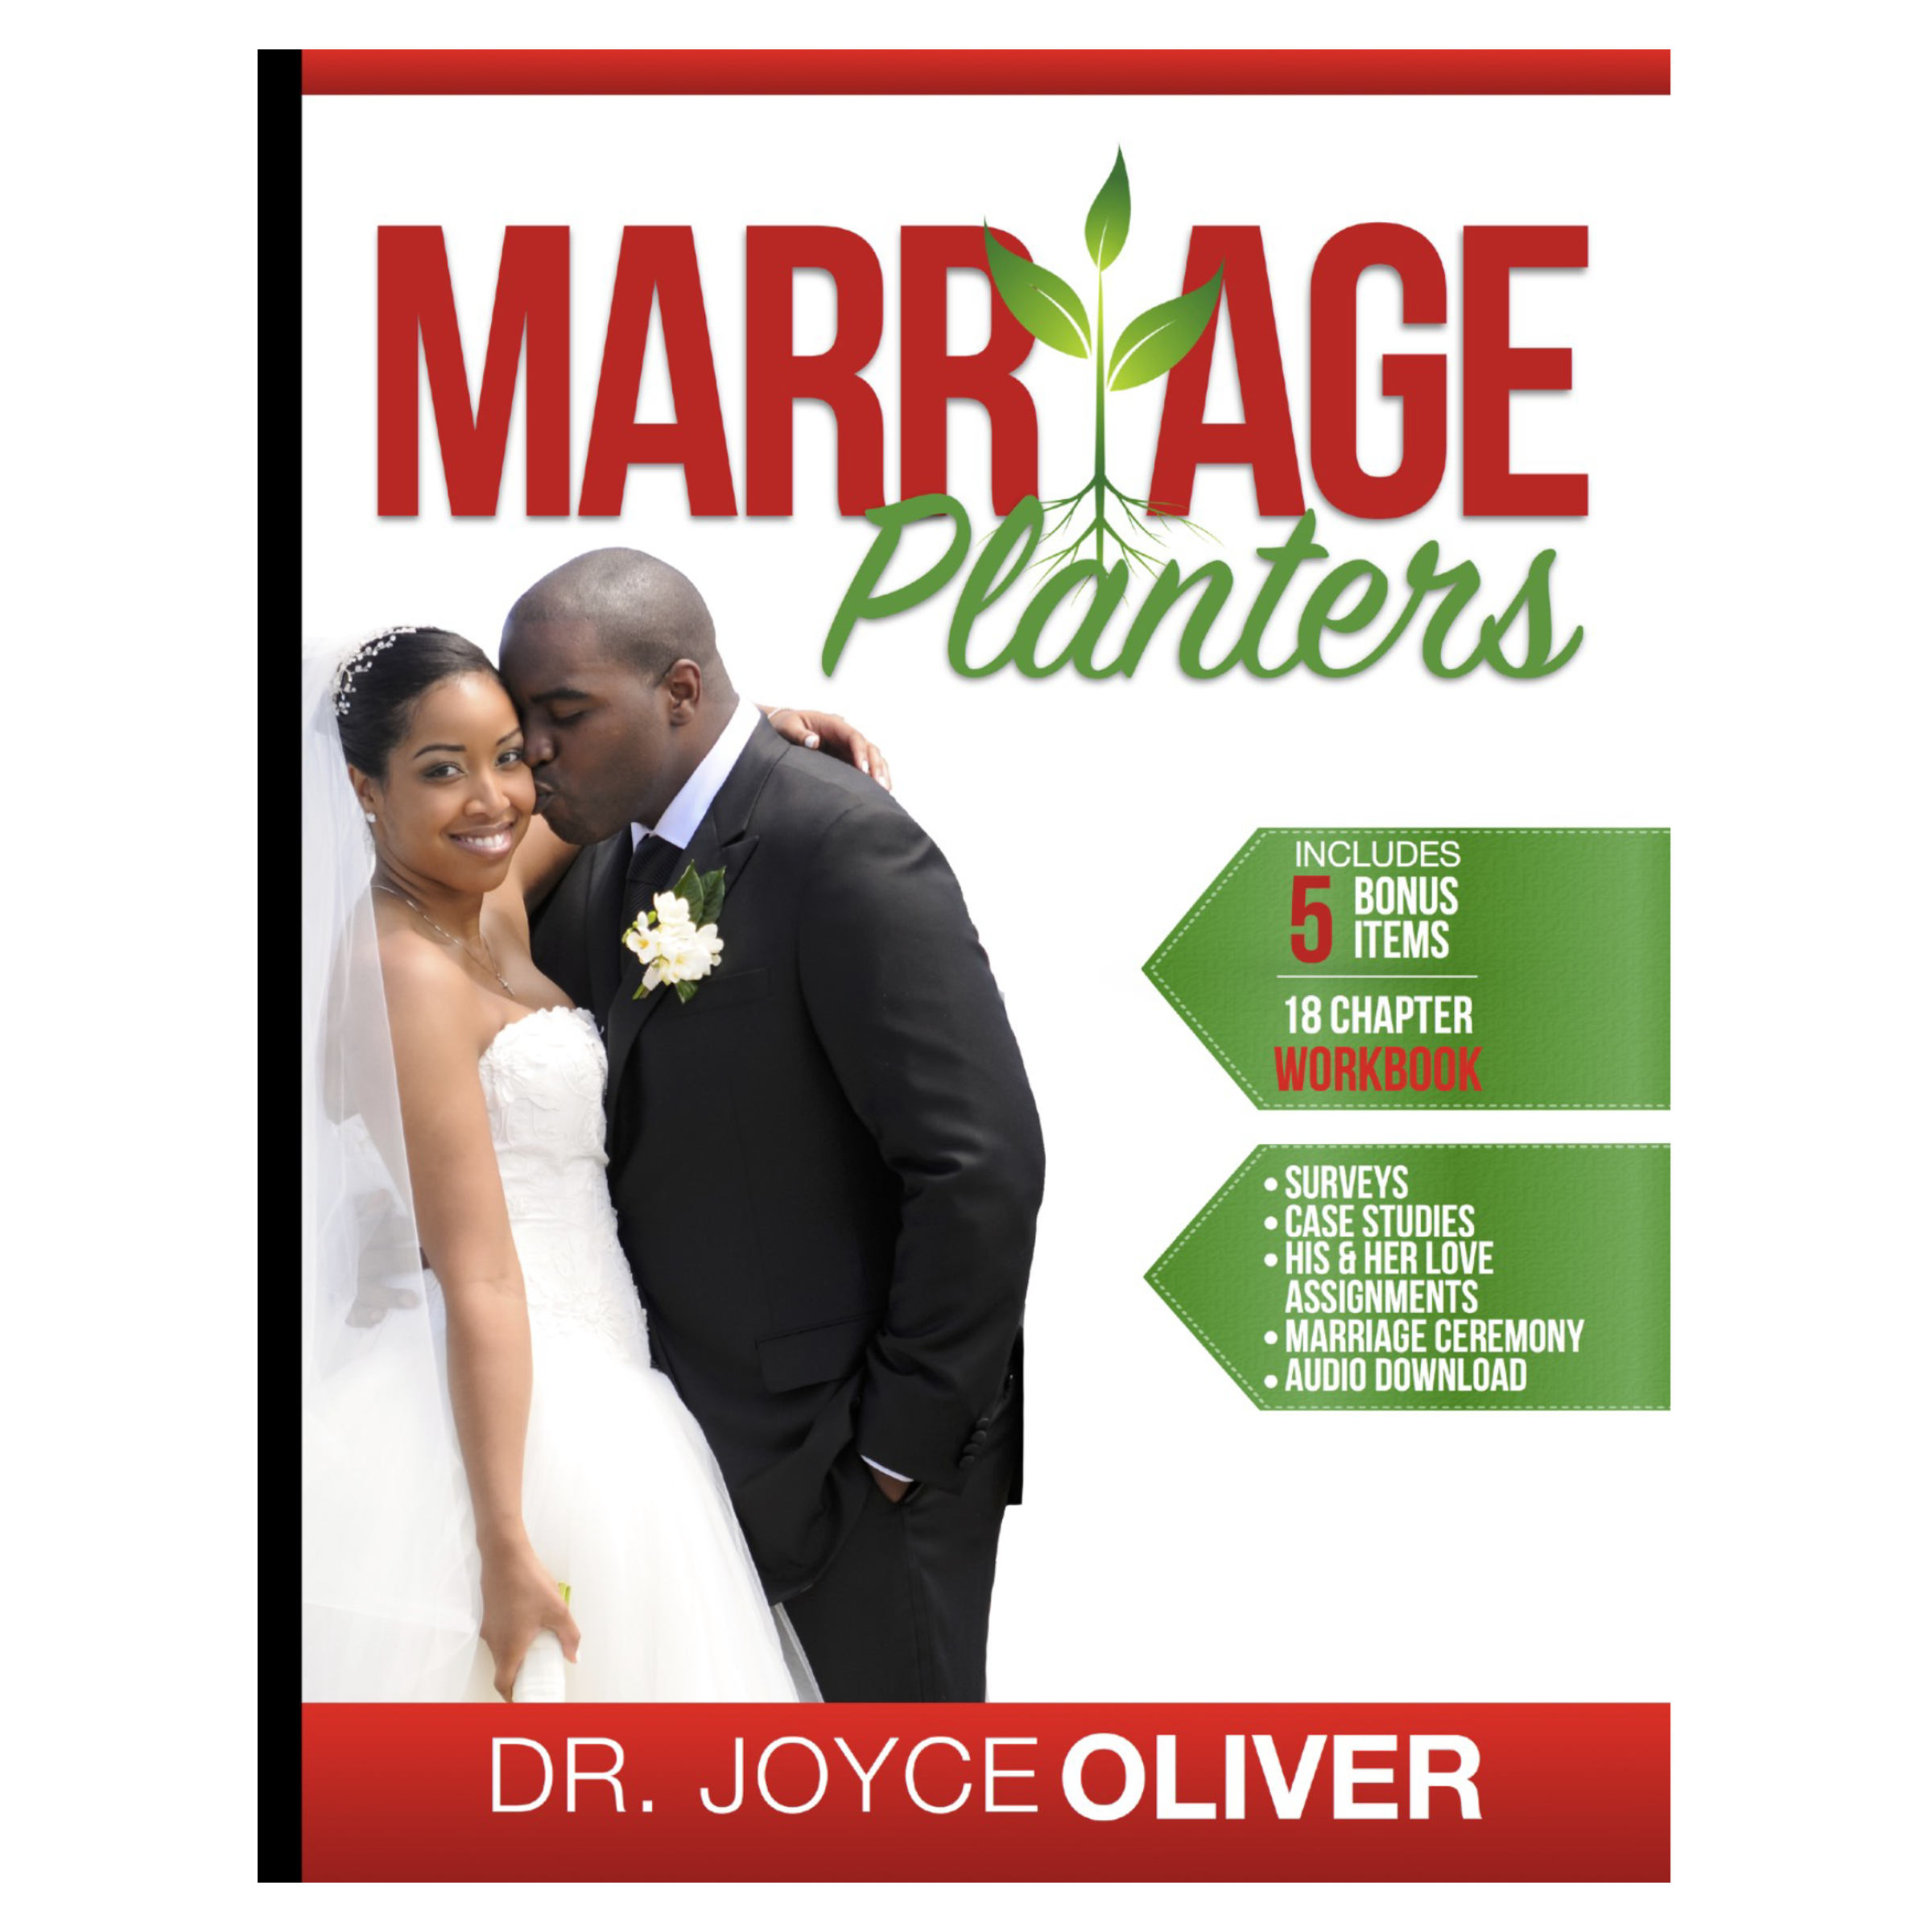 Marriage Planters - Book